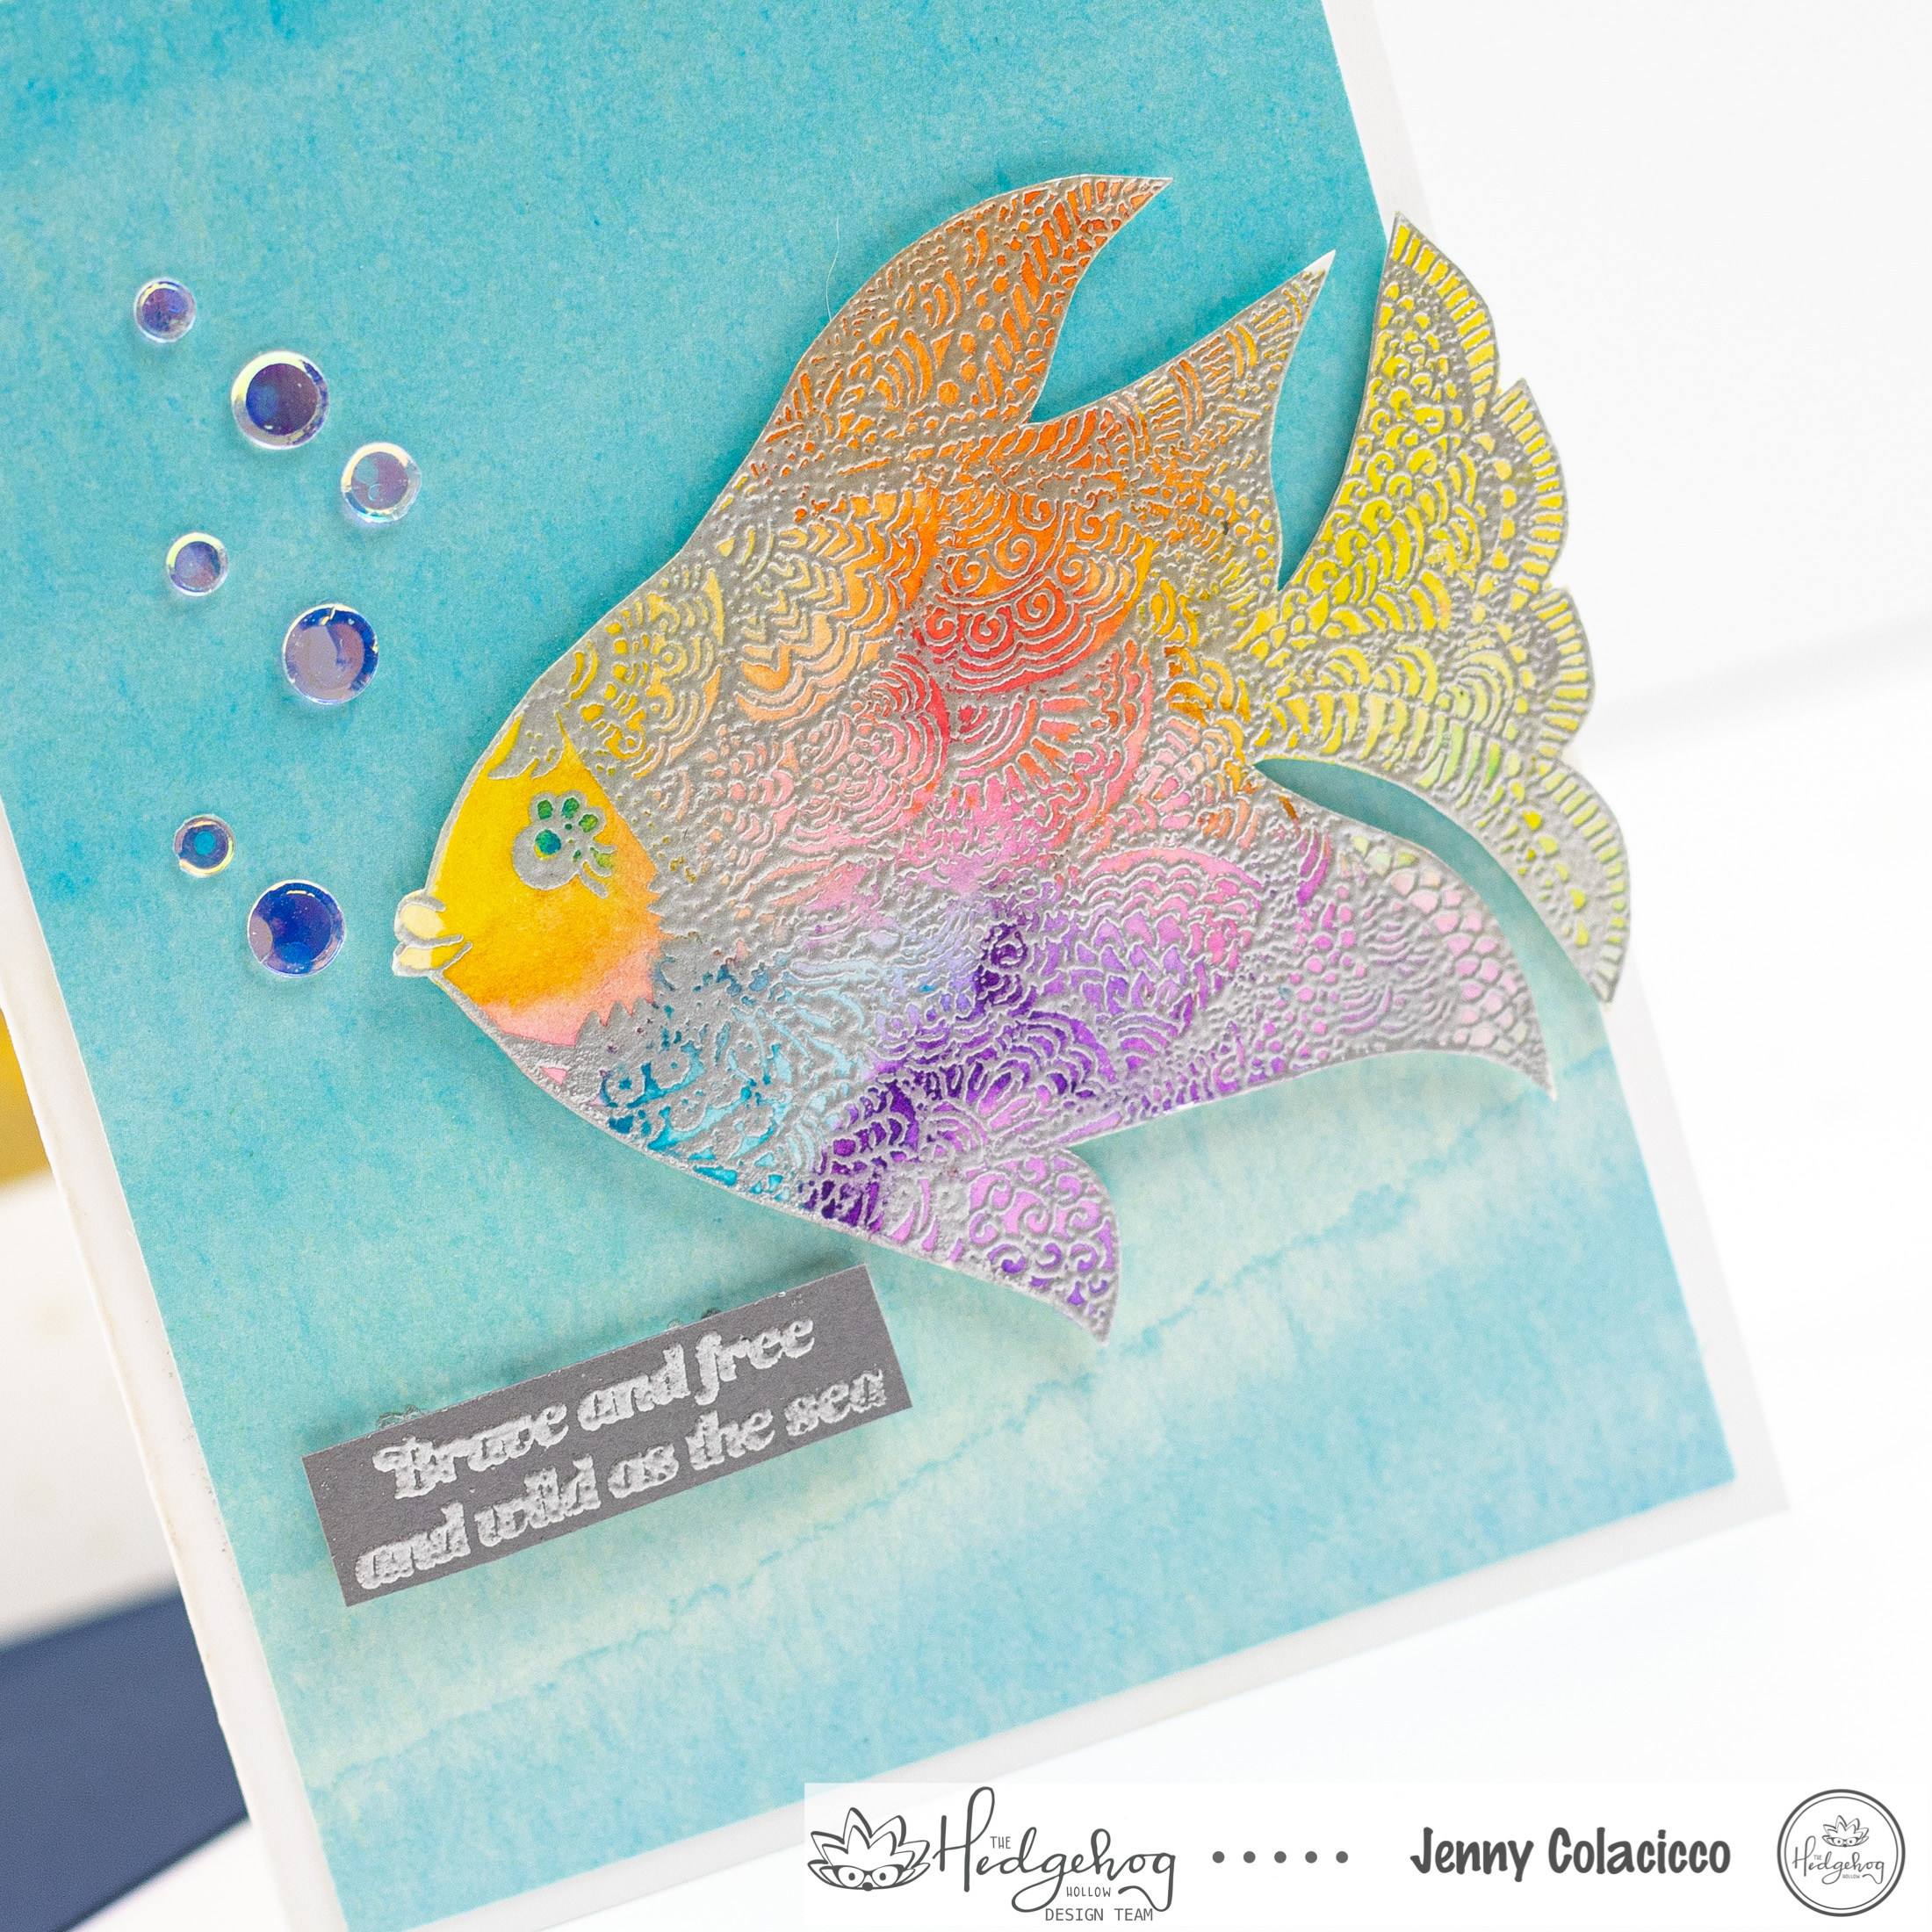 Rainbow Fish Two Ways with Jenny Colacicco